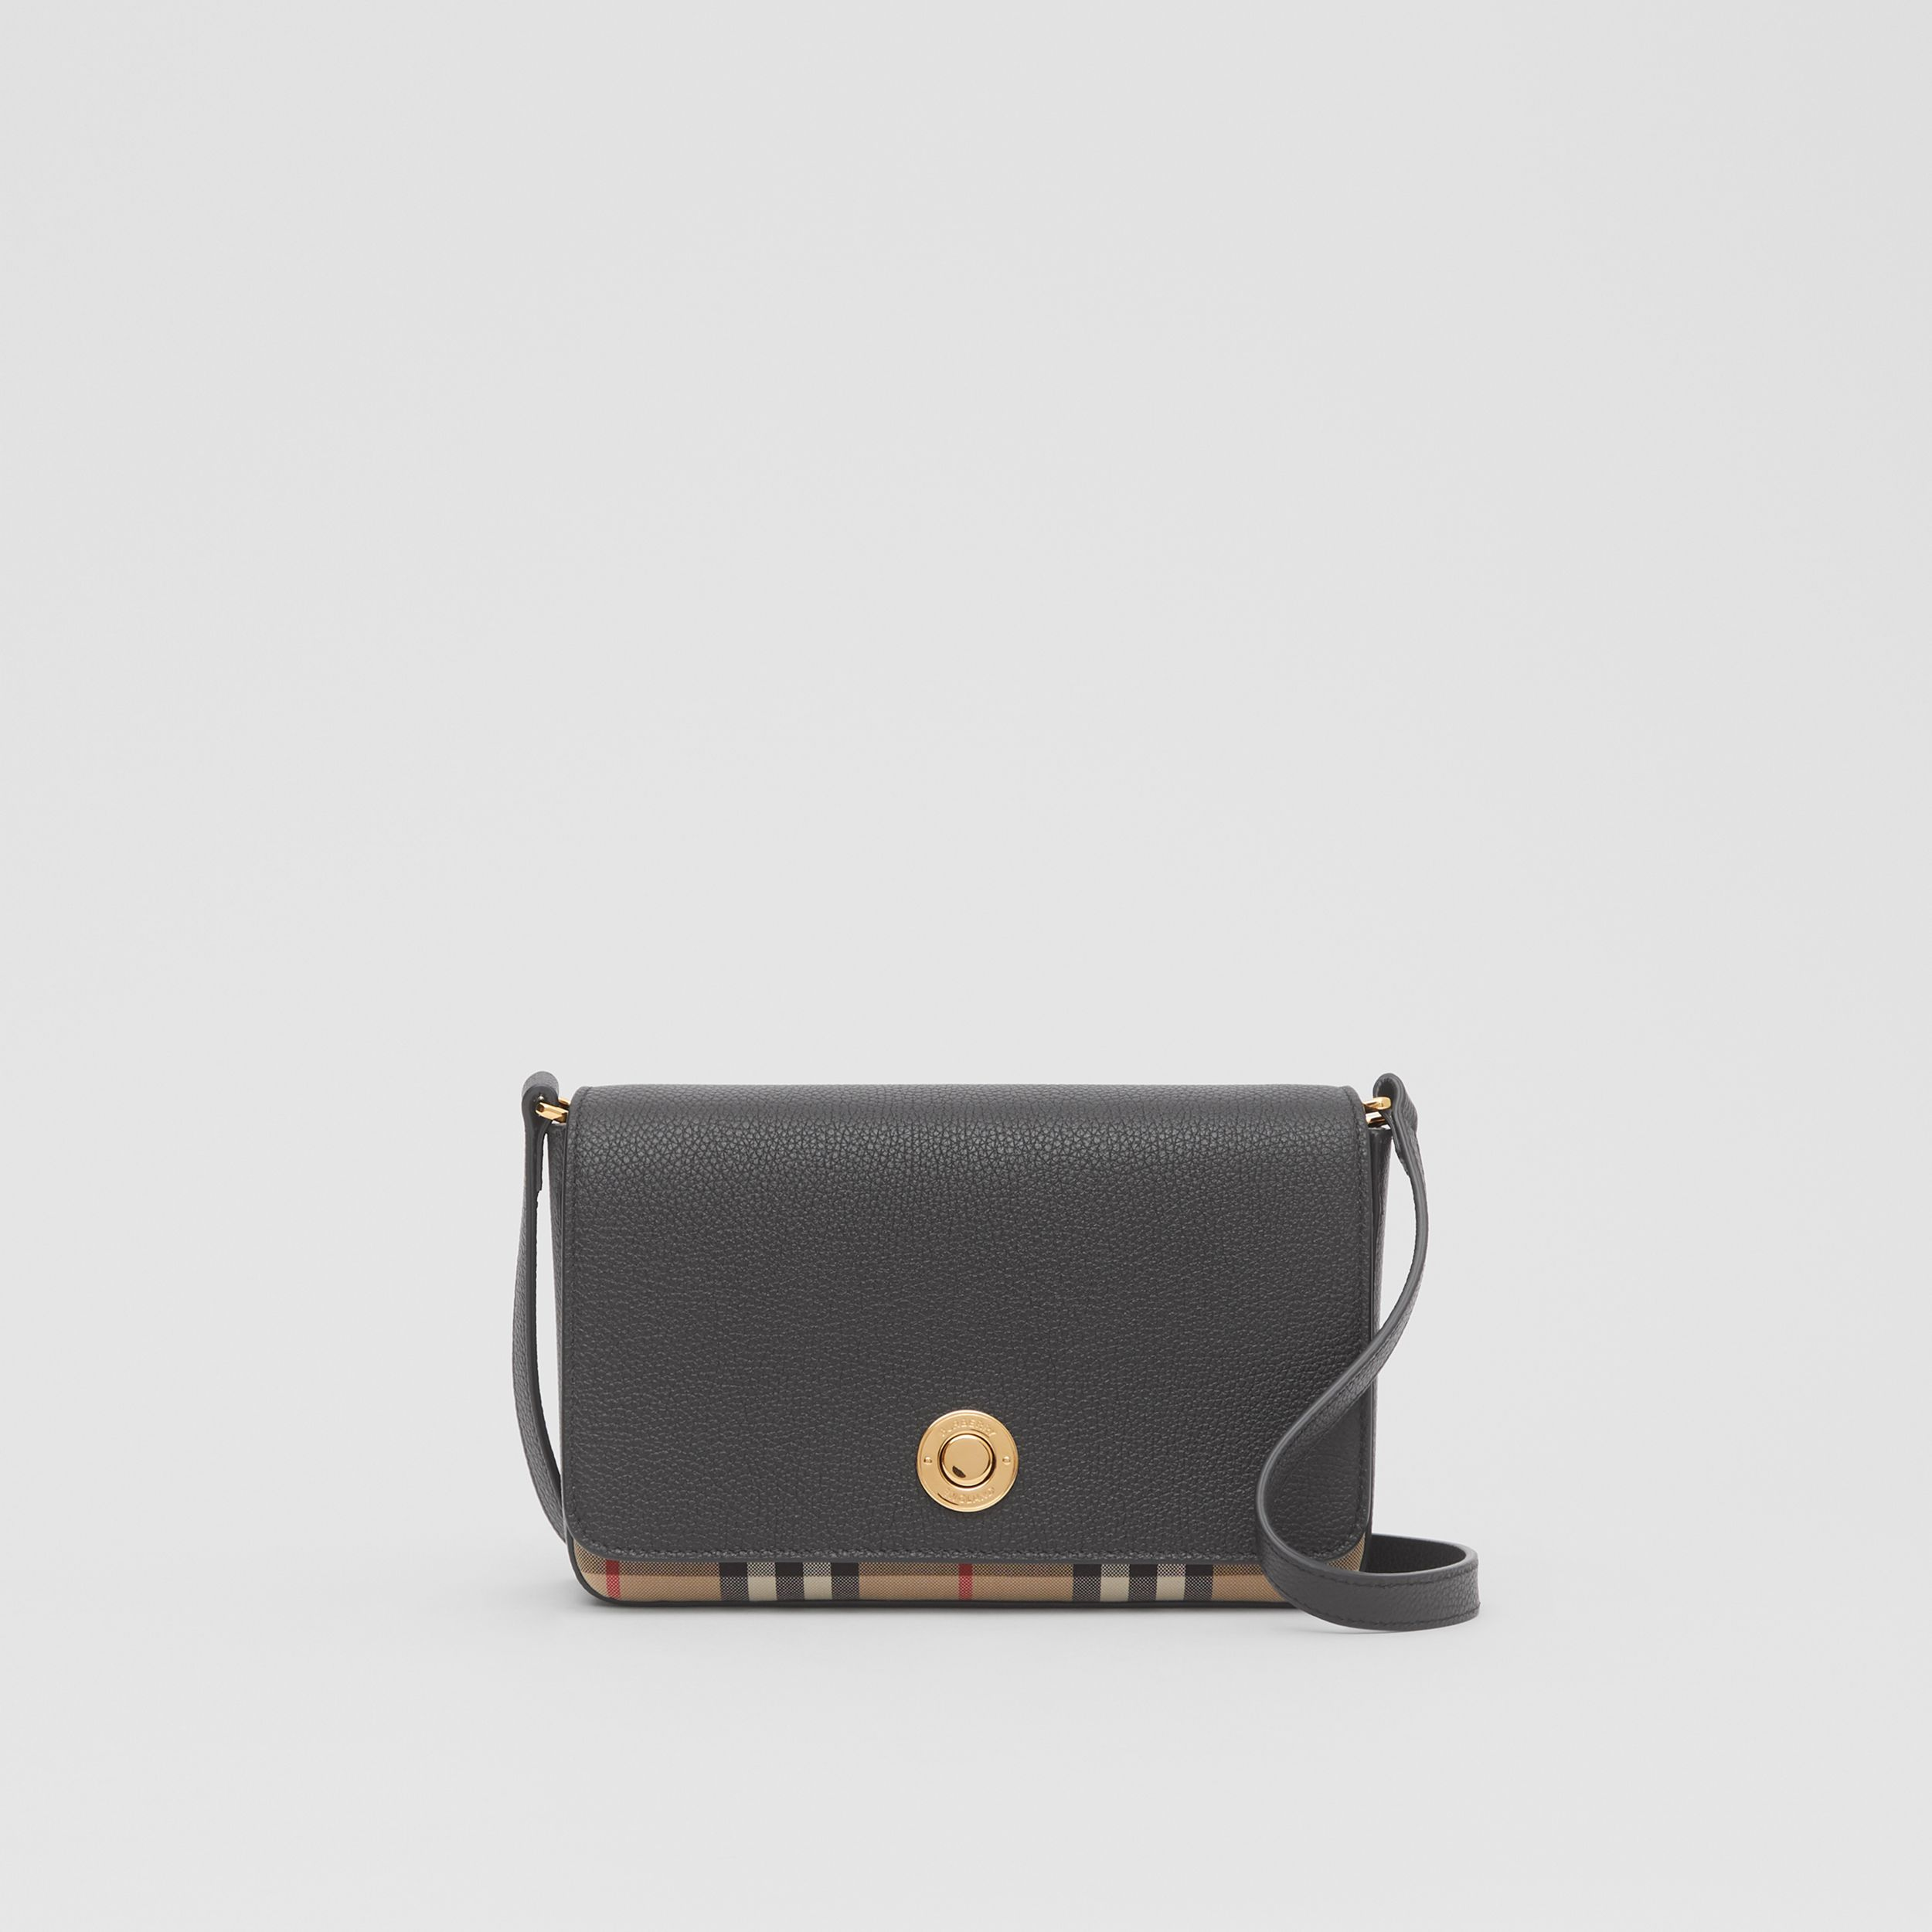 Small Leather and Vintage Check Crossbody Bag in Black - Women | Burberry Canada - 1